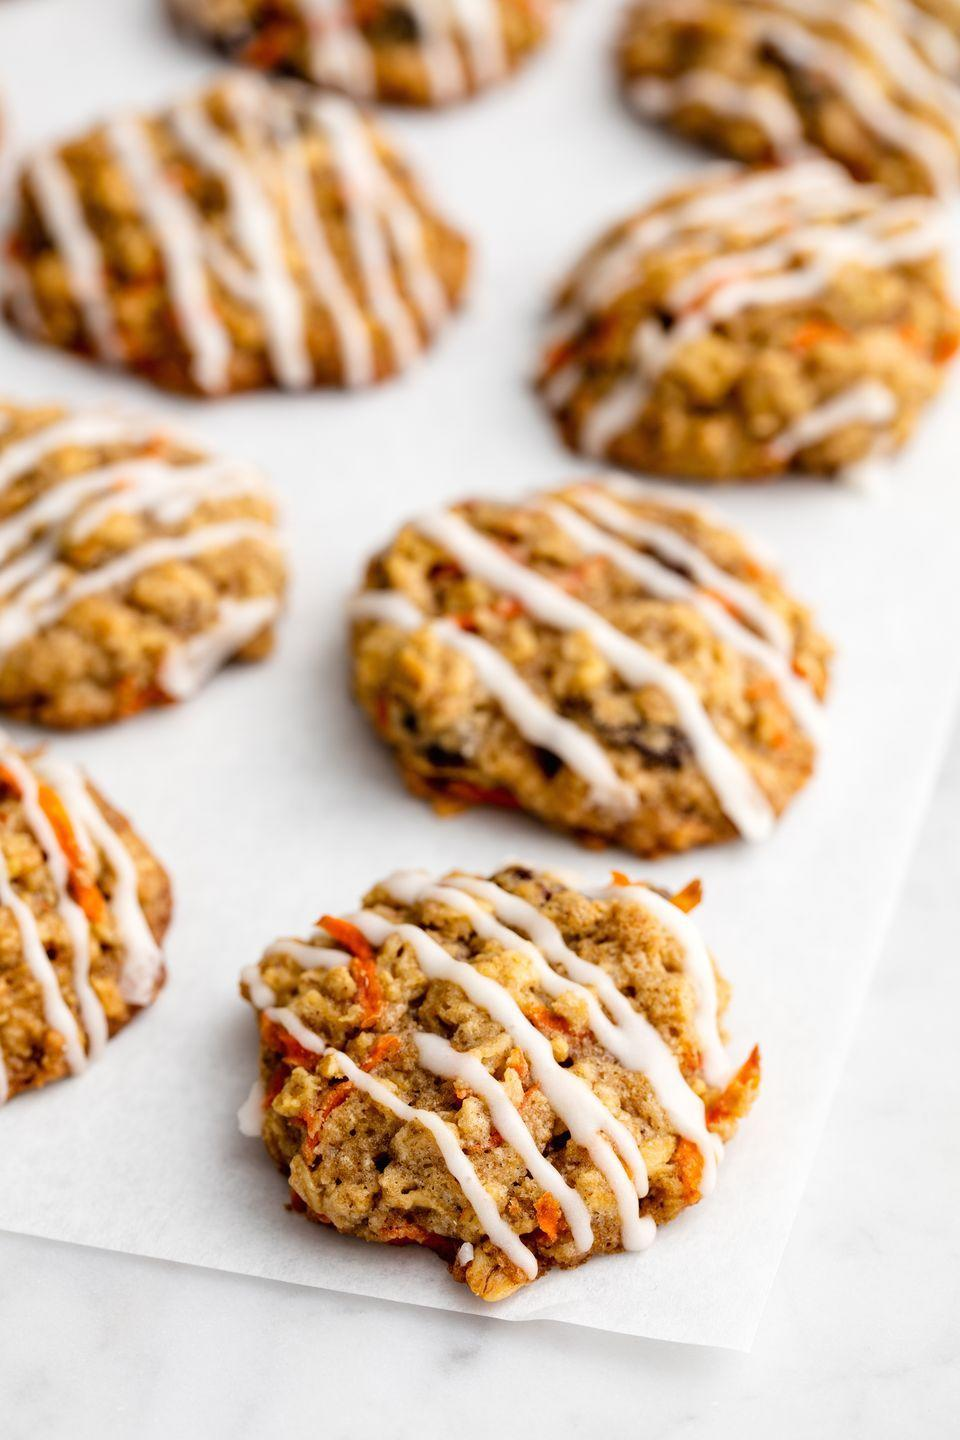 """<p>Who says you have to wait until Easter?</p><p>Get the recipe from <a href=""""https://www.delish.com/cooking/recipe-ideas/recipes/a50448/carrot-cake-cookies-recipe/"""" rel=""""nofollow noopener"""" target=""""_blank"""" data-ylk=""""slk:Delish"""" class=""""link rapid-noclick-resp"""">Delish</a>.</p>"""